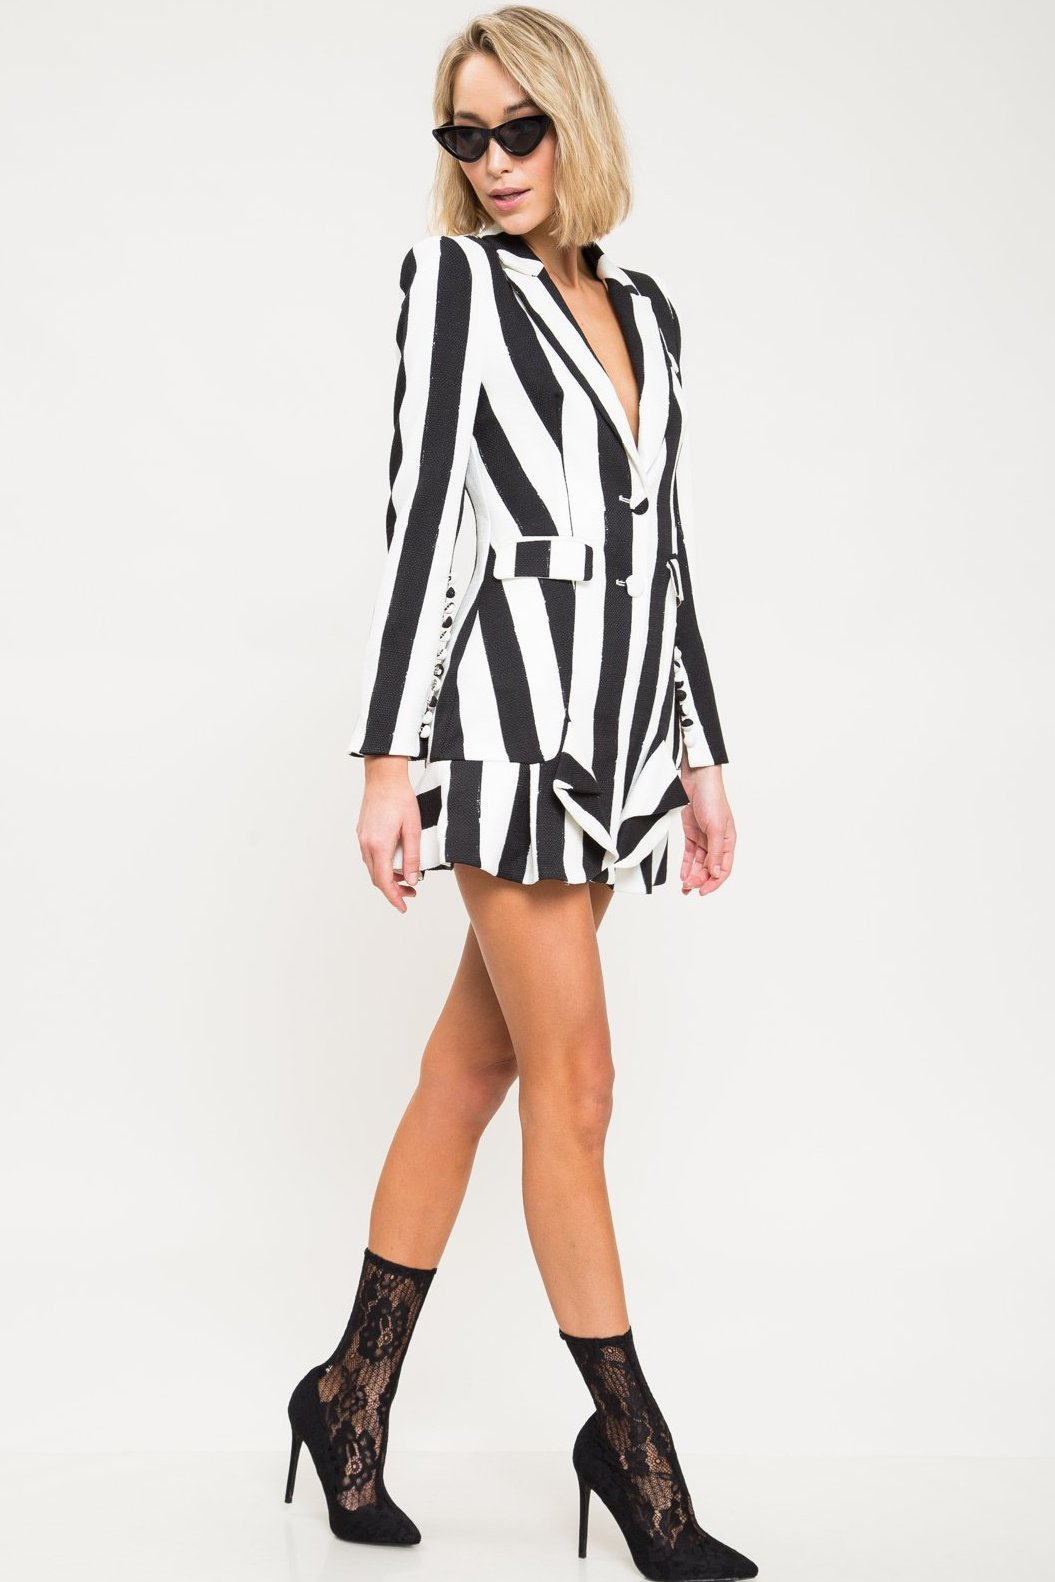 If I Were A Boy Stripe Blazer Dress - Geegeebae